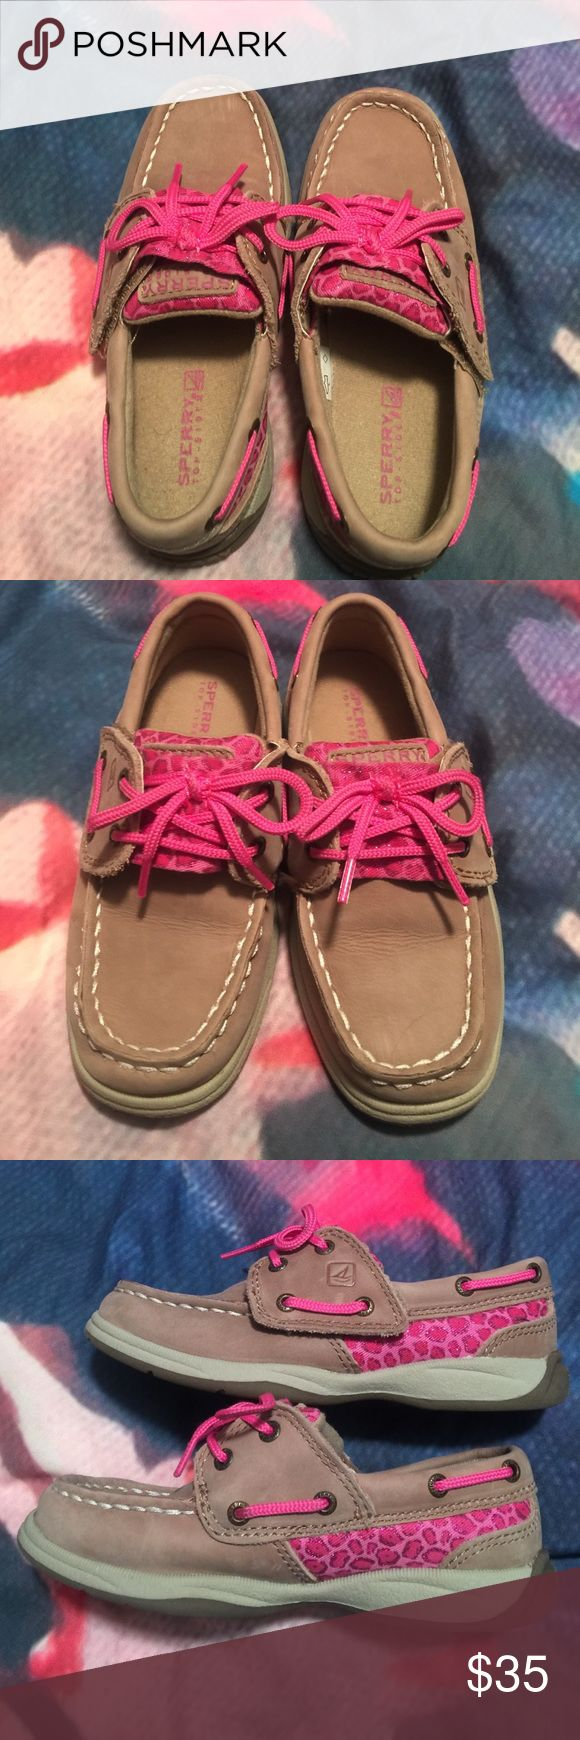 Girls Sperry Top-Sider shoes New only worn once Velcro  Sperry Top-Sider shoes for girls in perfect condition Sperry Top-Sider Shoes Sneakers